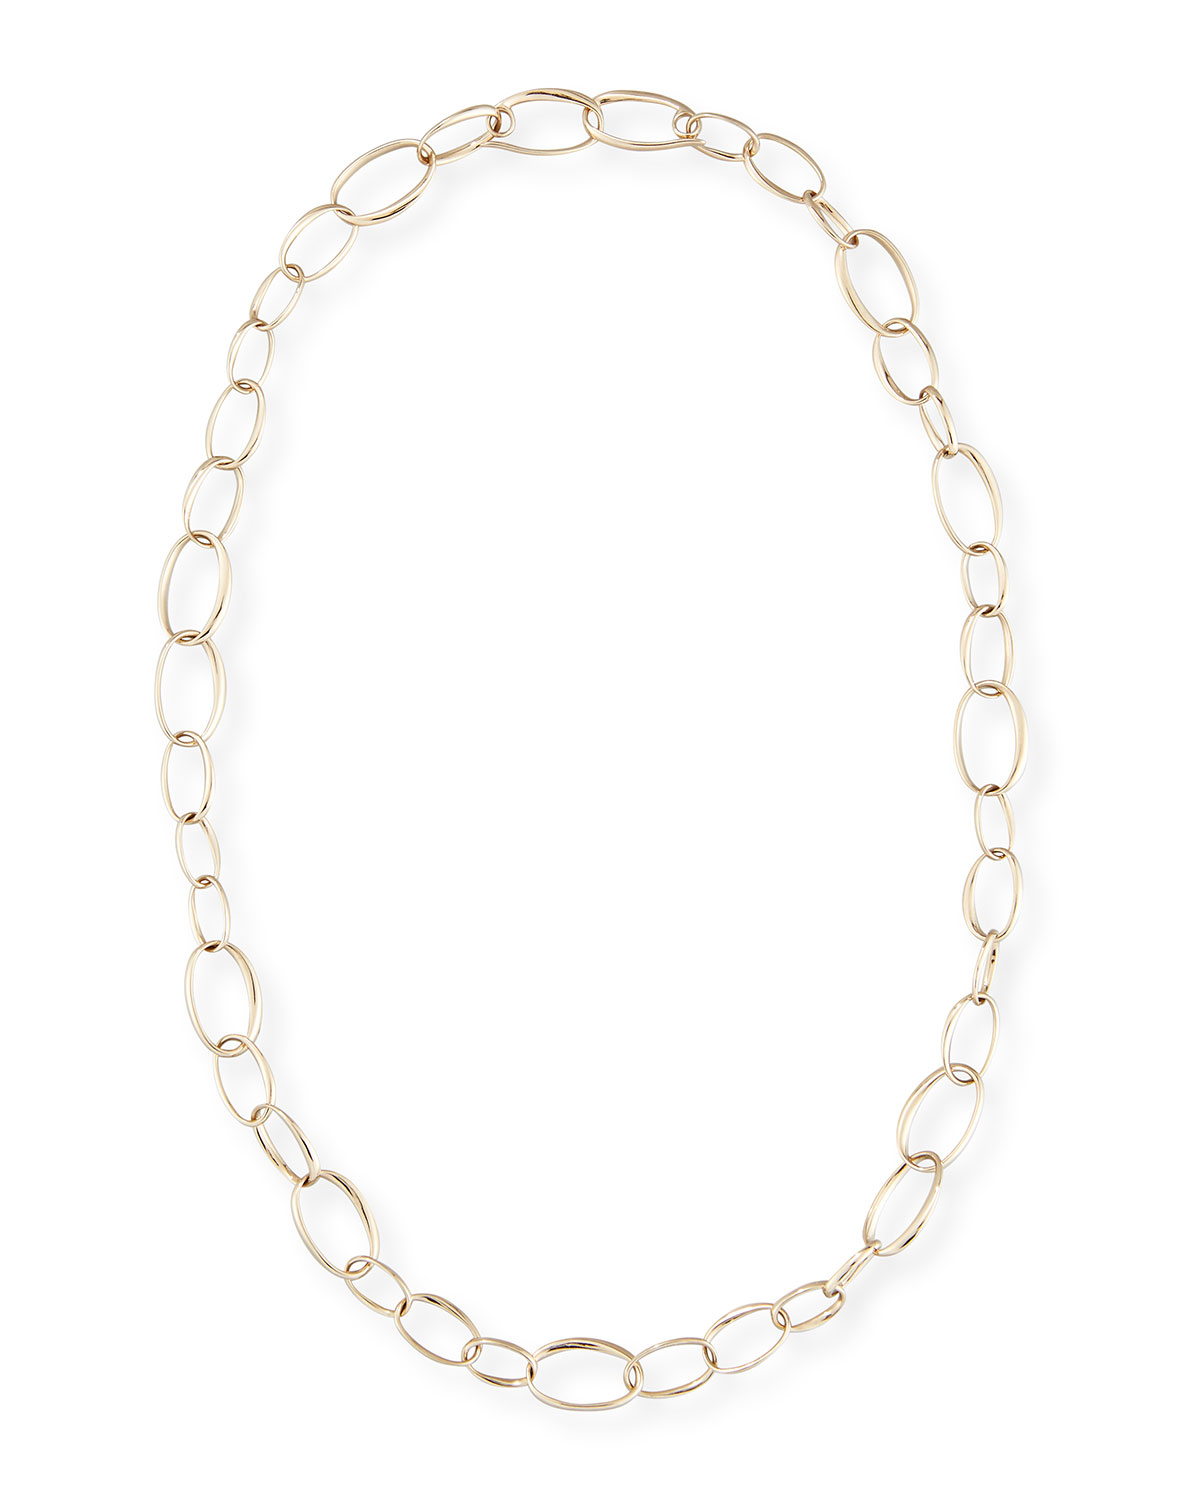 Pomellato Chain Necklace in 18K White Gold